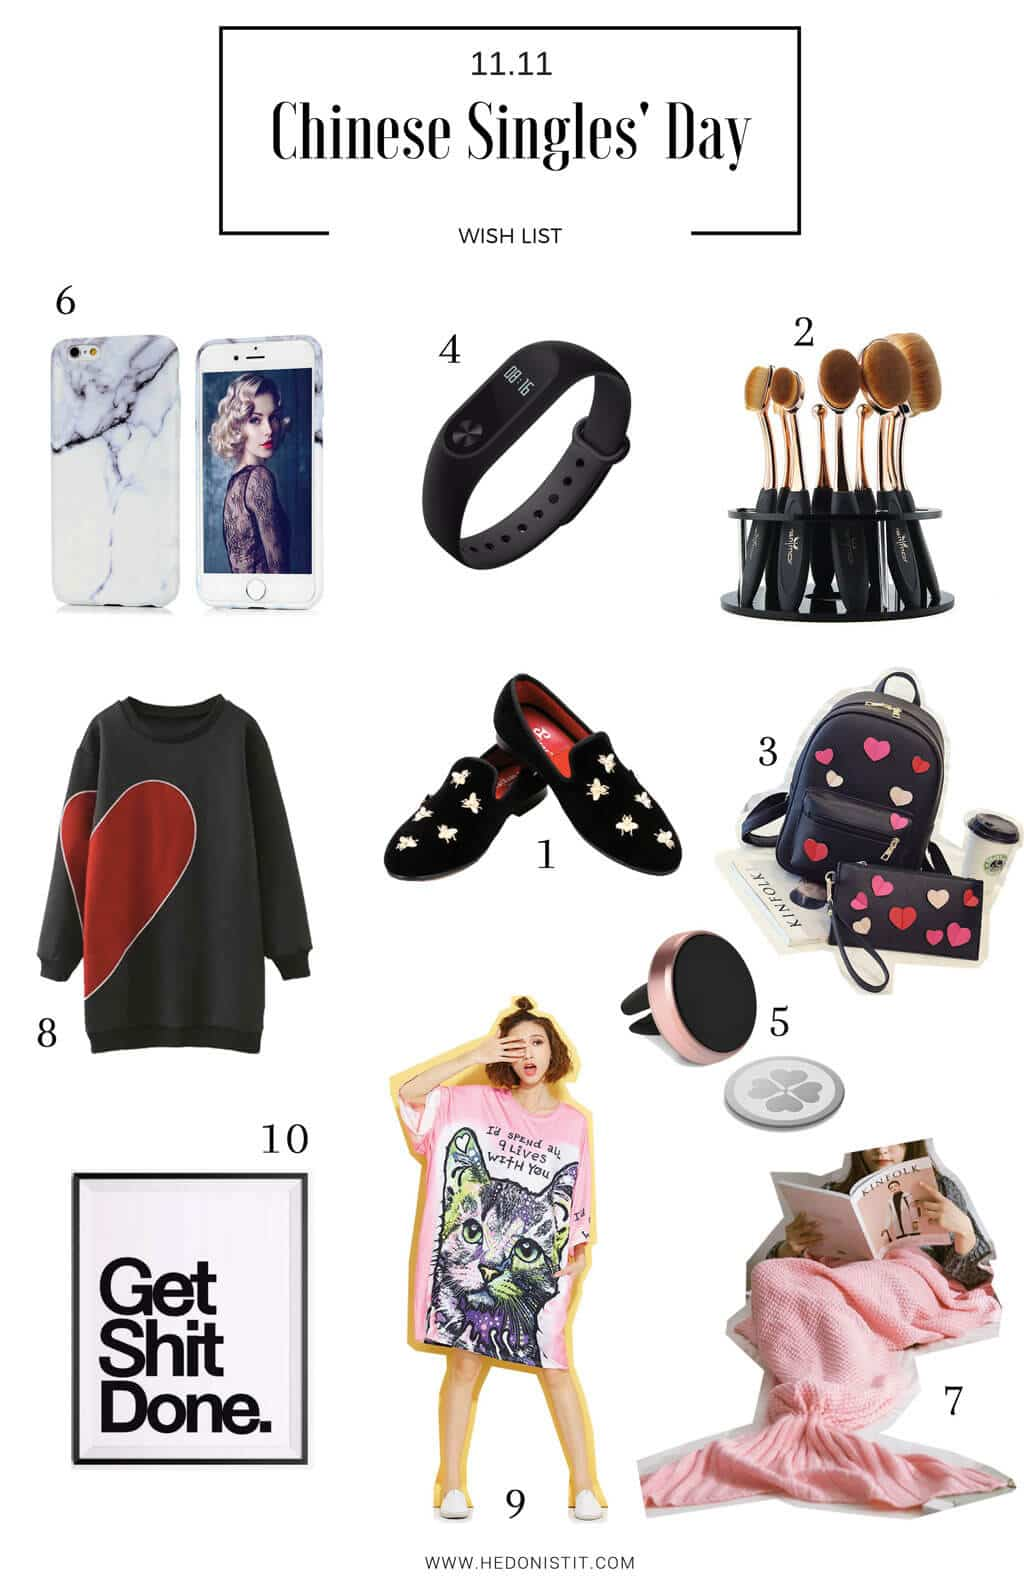 My Wish List for Chinese Singles' Day on AliExpress   Sales Wish List